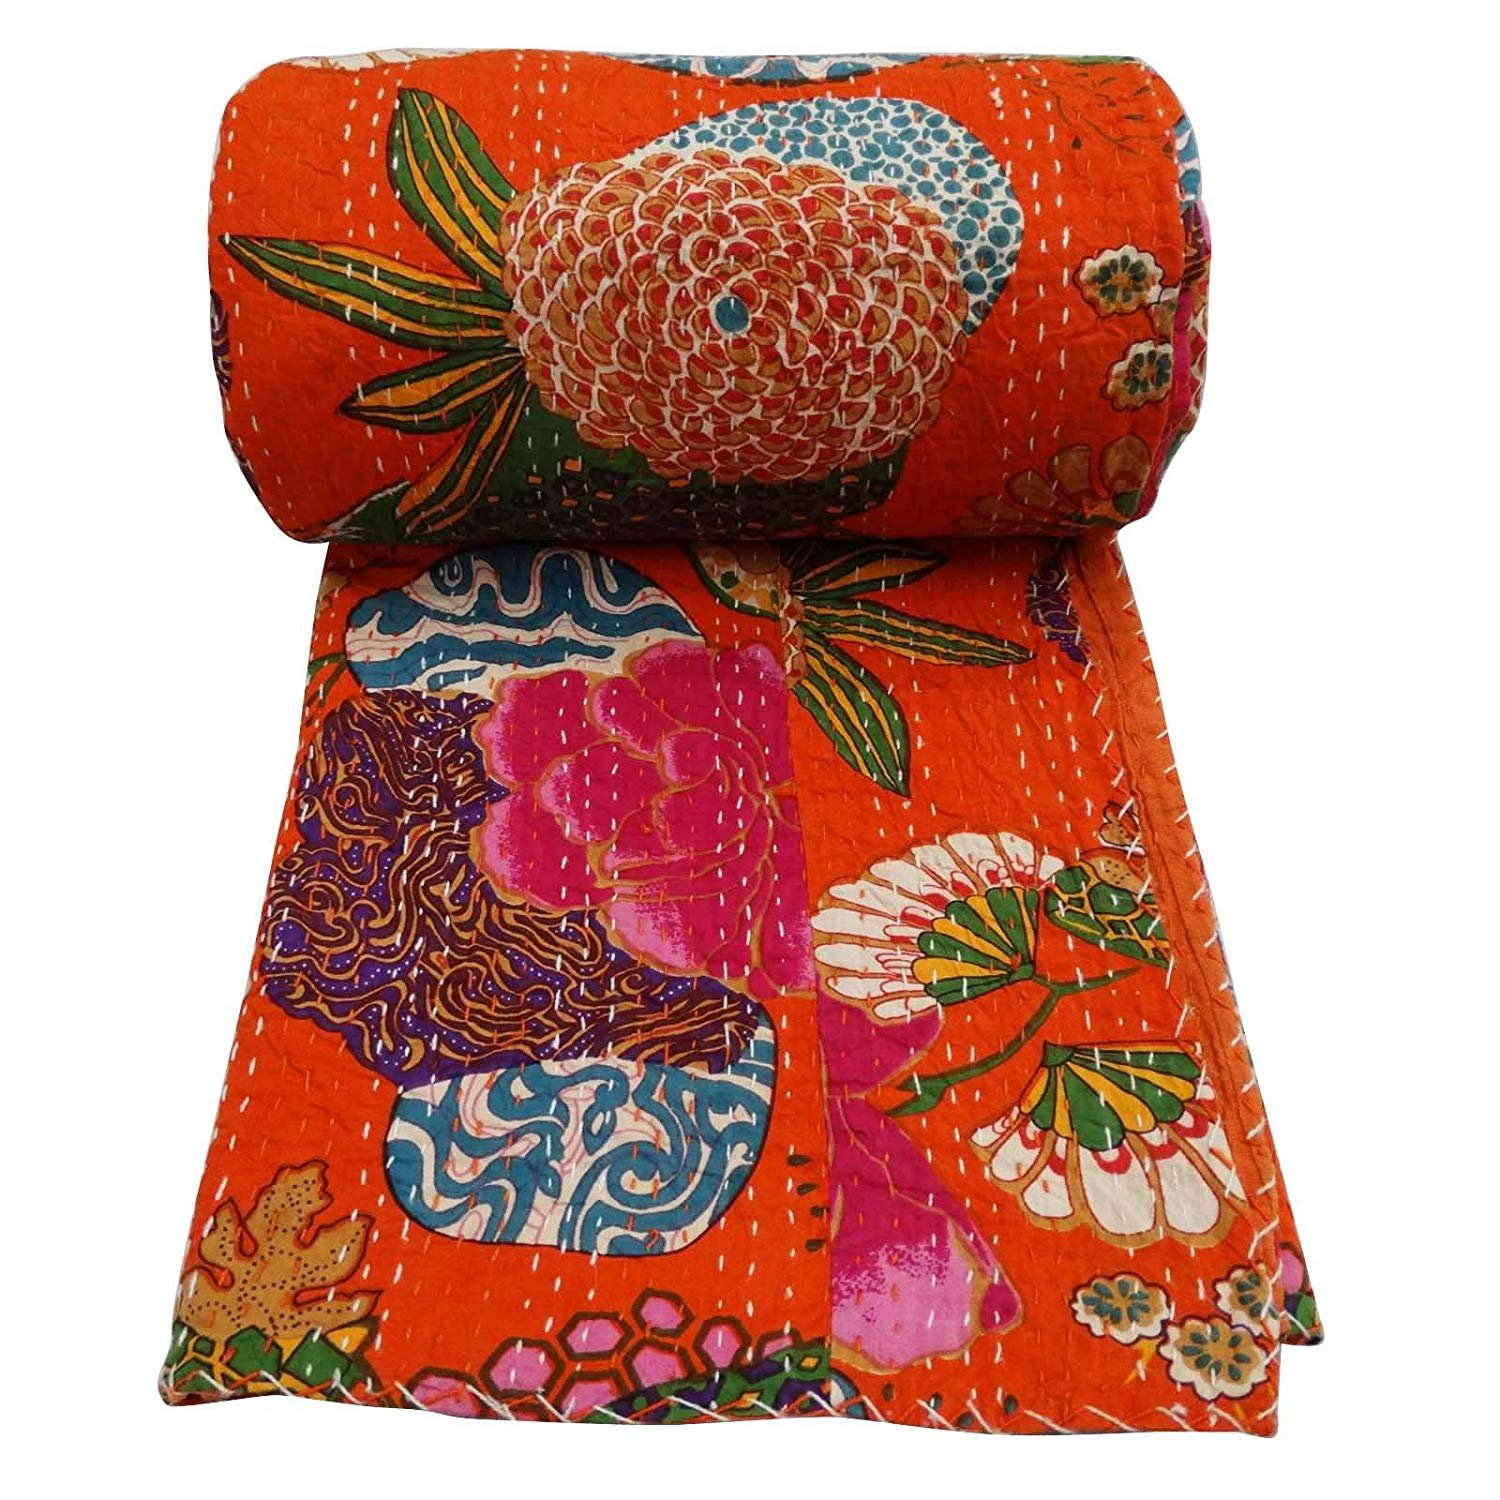 Marubhumi Indian Cotton Kantha Quilt Bedspread Twin size Floral Print Kantha Stitch, 60 X 90 inches (Orange)